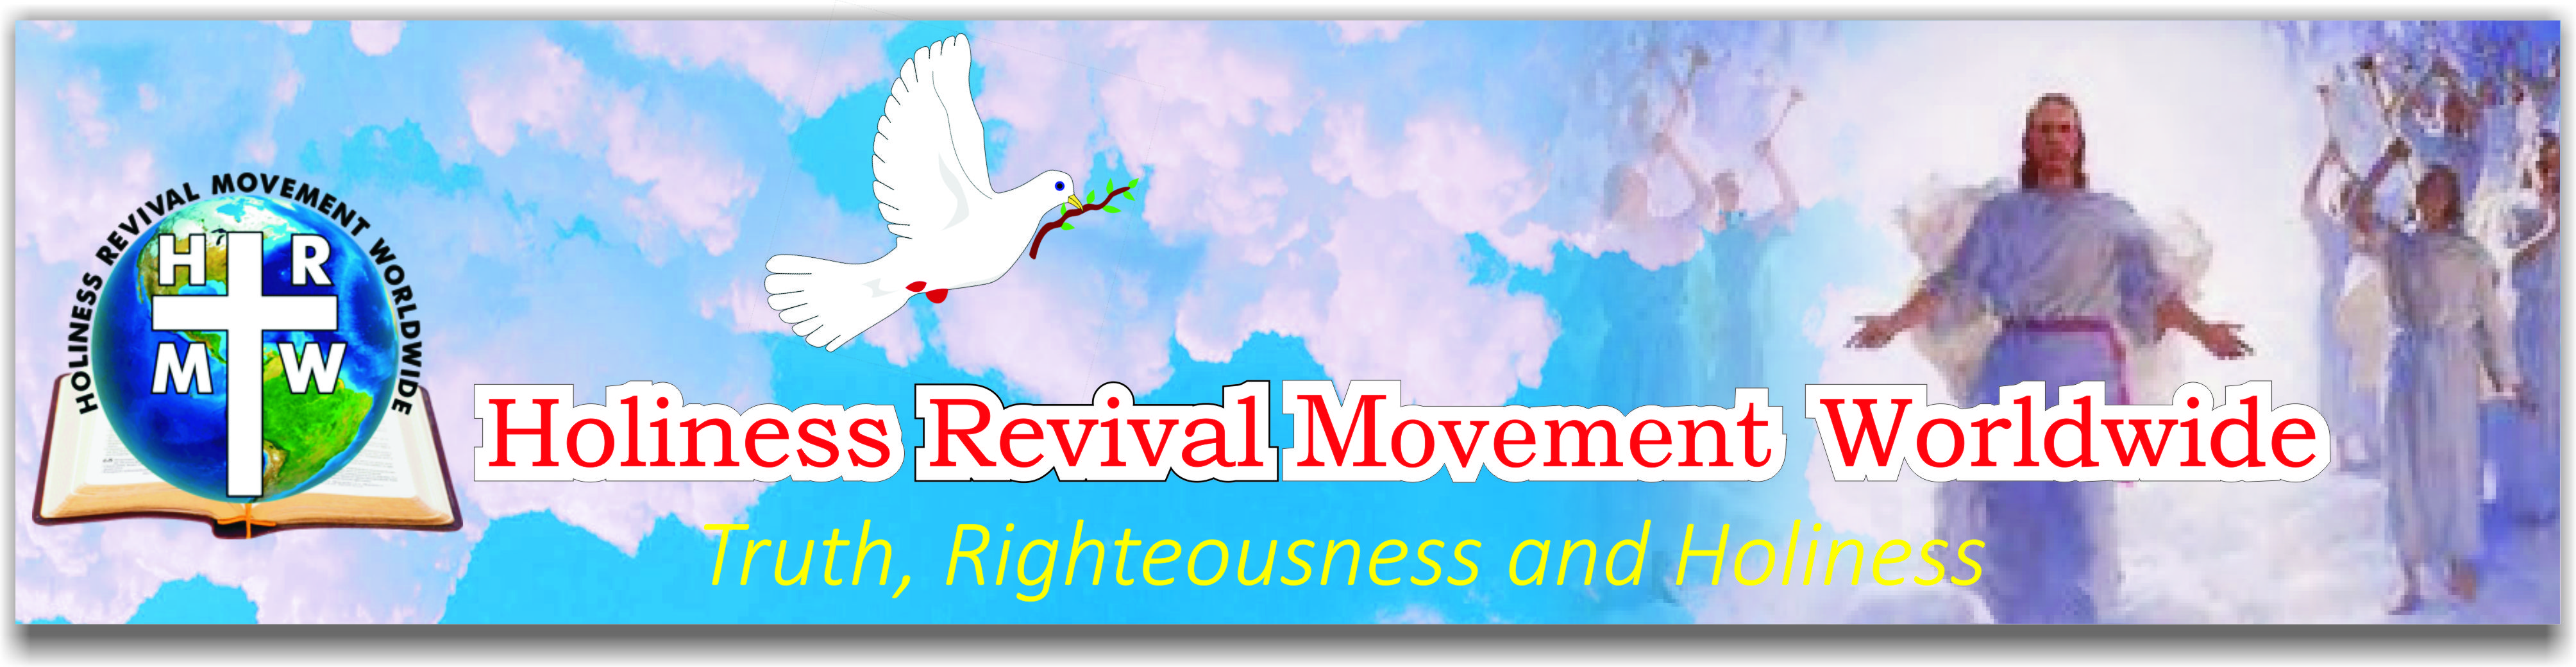 Holiness revival movement worldwide